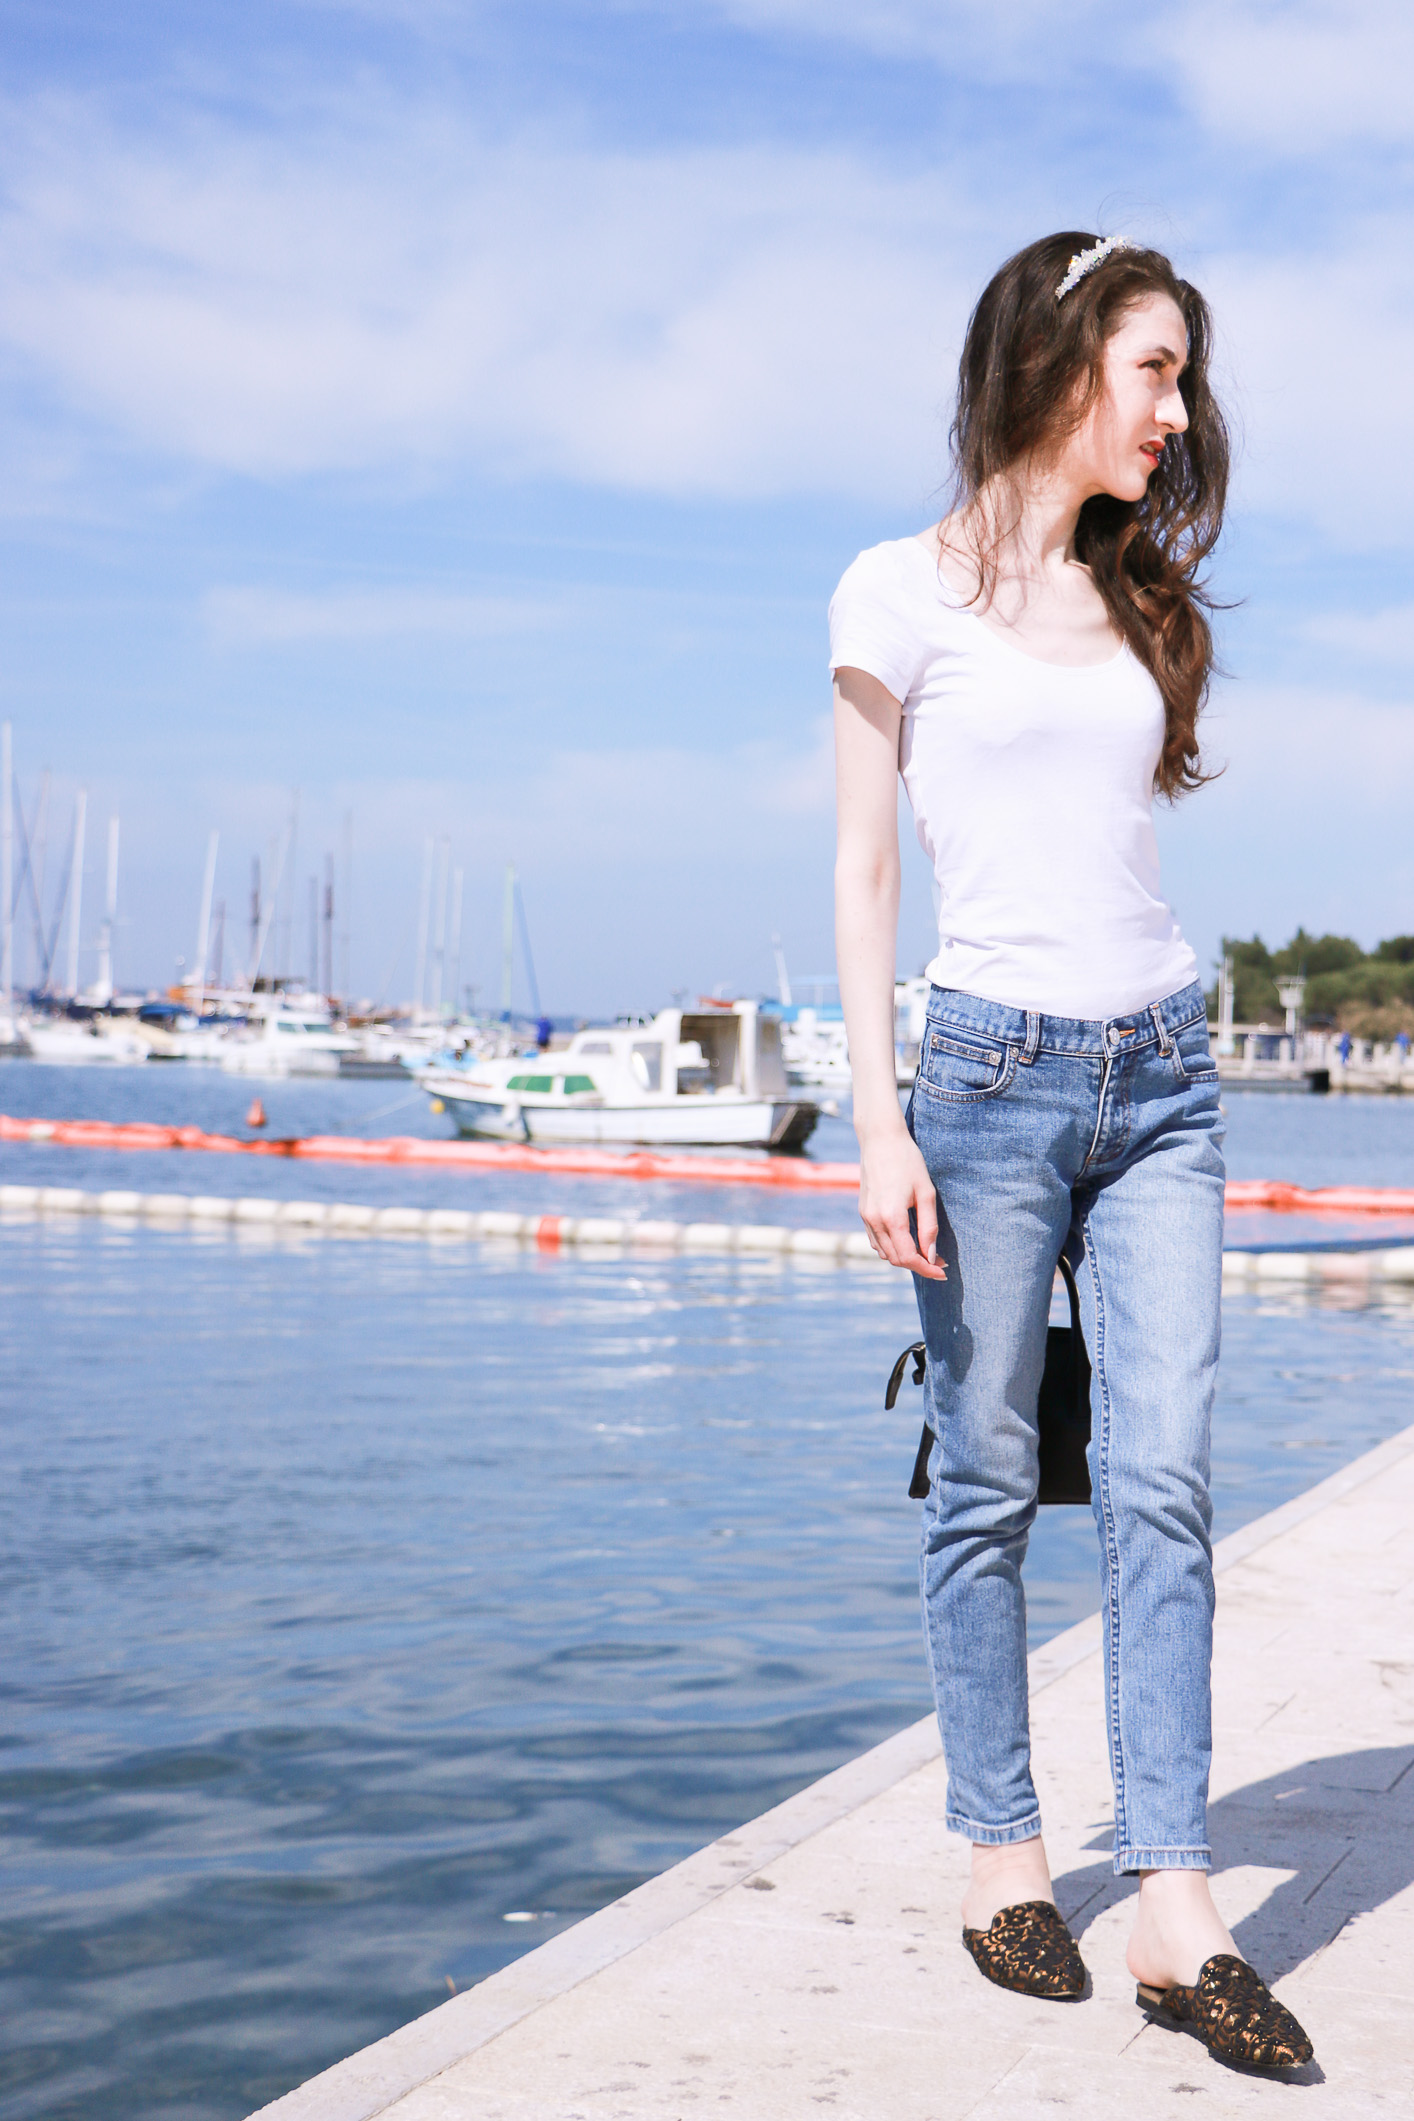 Fashion blogger Veronika Lipar of Brunette From Wall Street sharing 5 accessories that makes us look elegant in any casual outfit while by the Adriatic sea